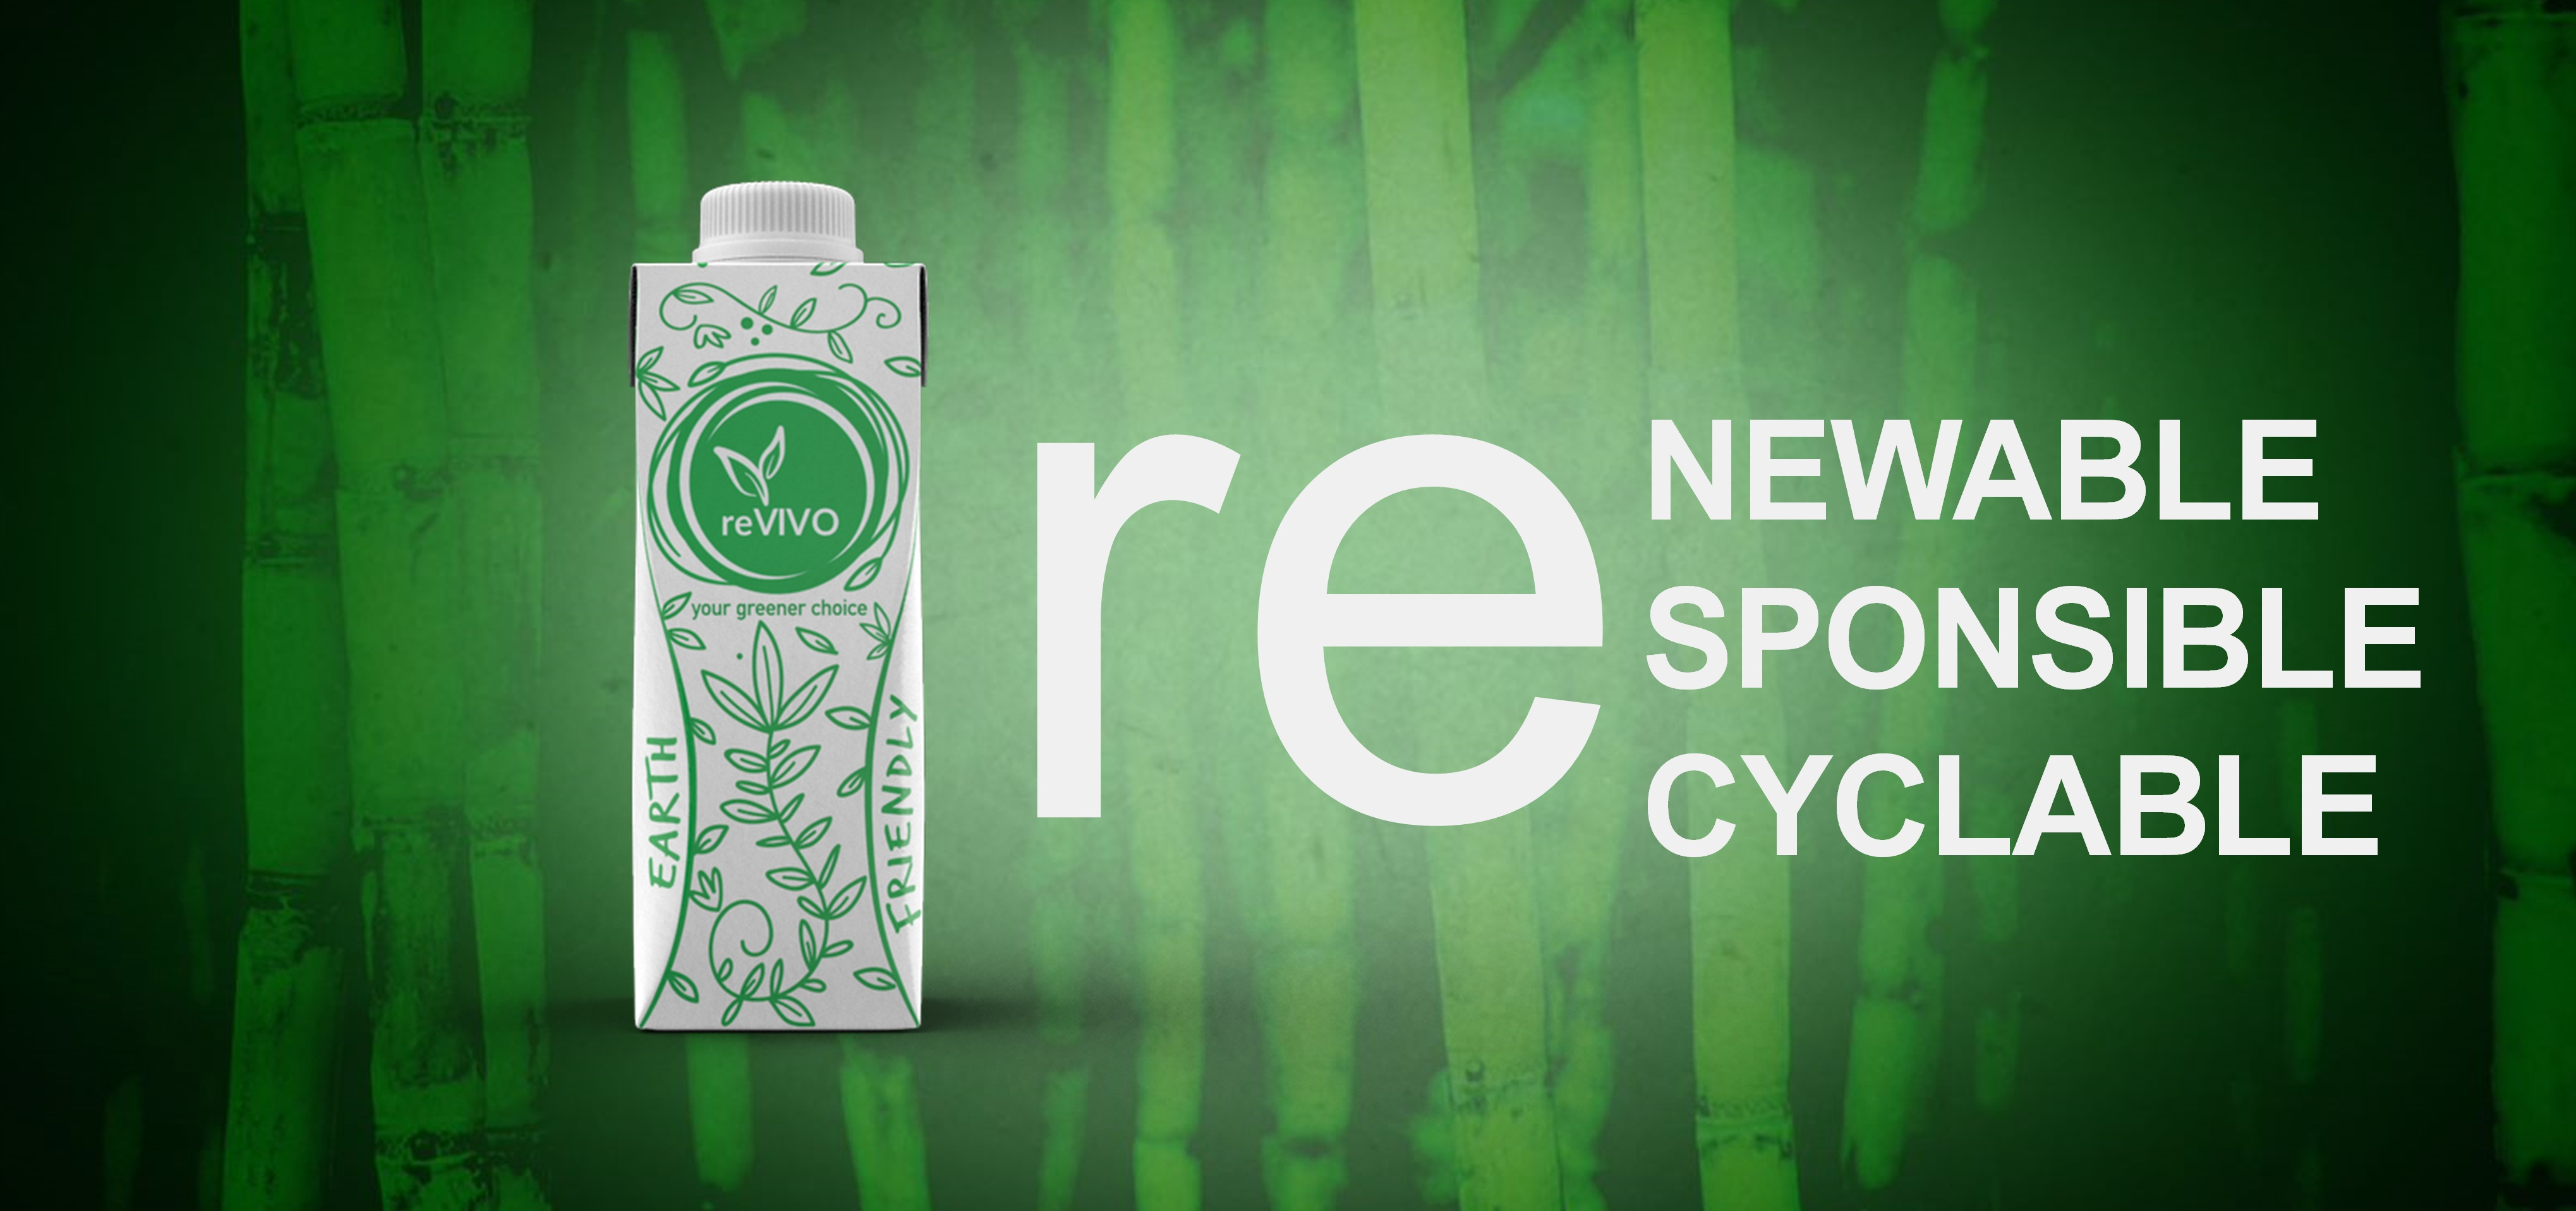 revivo, your greener choice